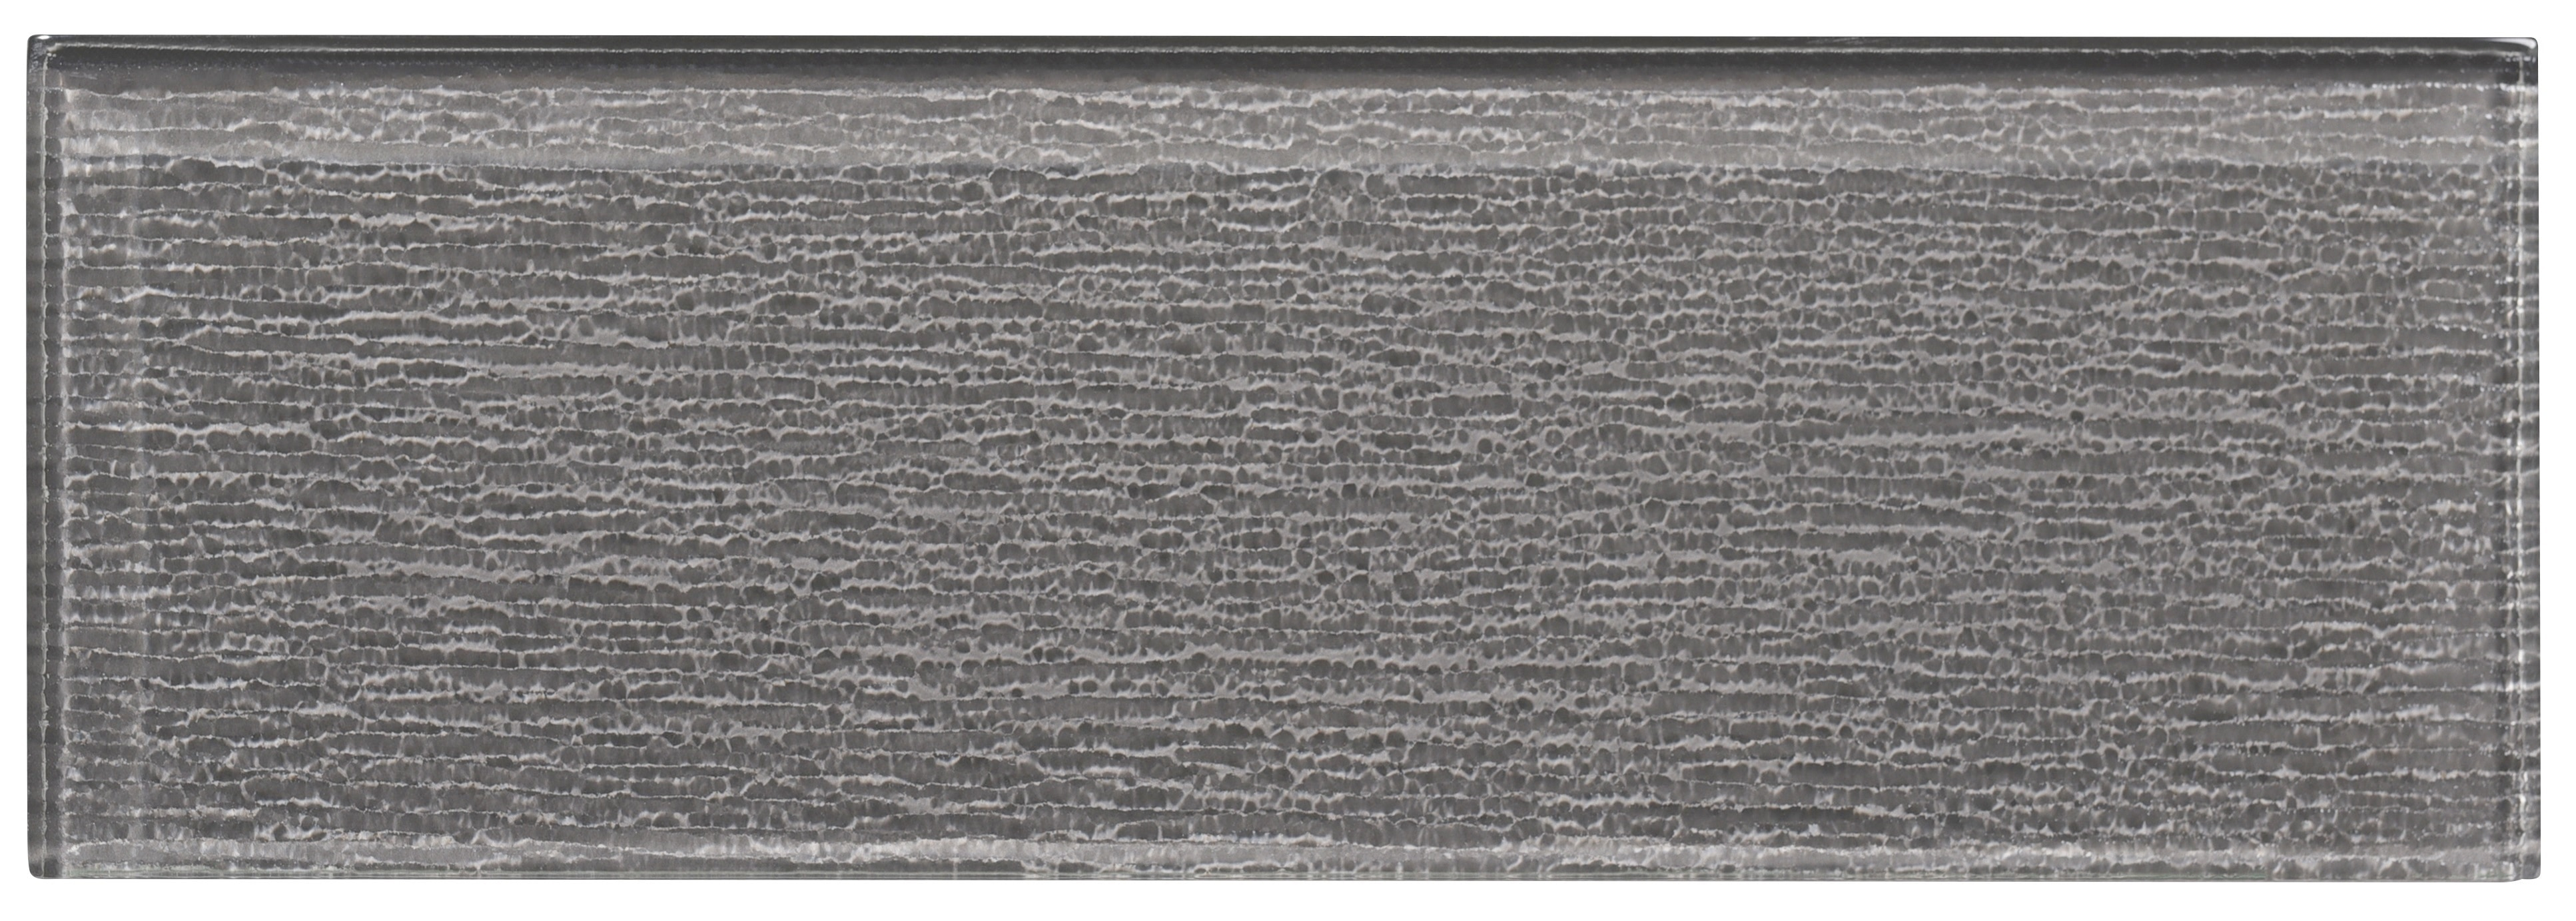 """Glass Subway Tile / 4 x 12 x 0.31 inches / Glossy Textured Individual 4"""" X 12"""" Glass Subway Tile In Dark Gray 0"""